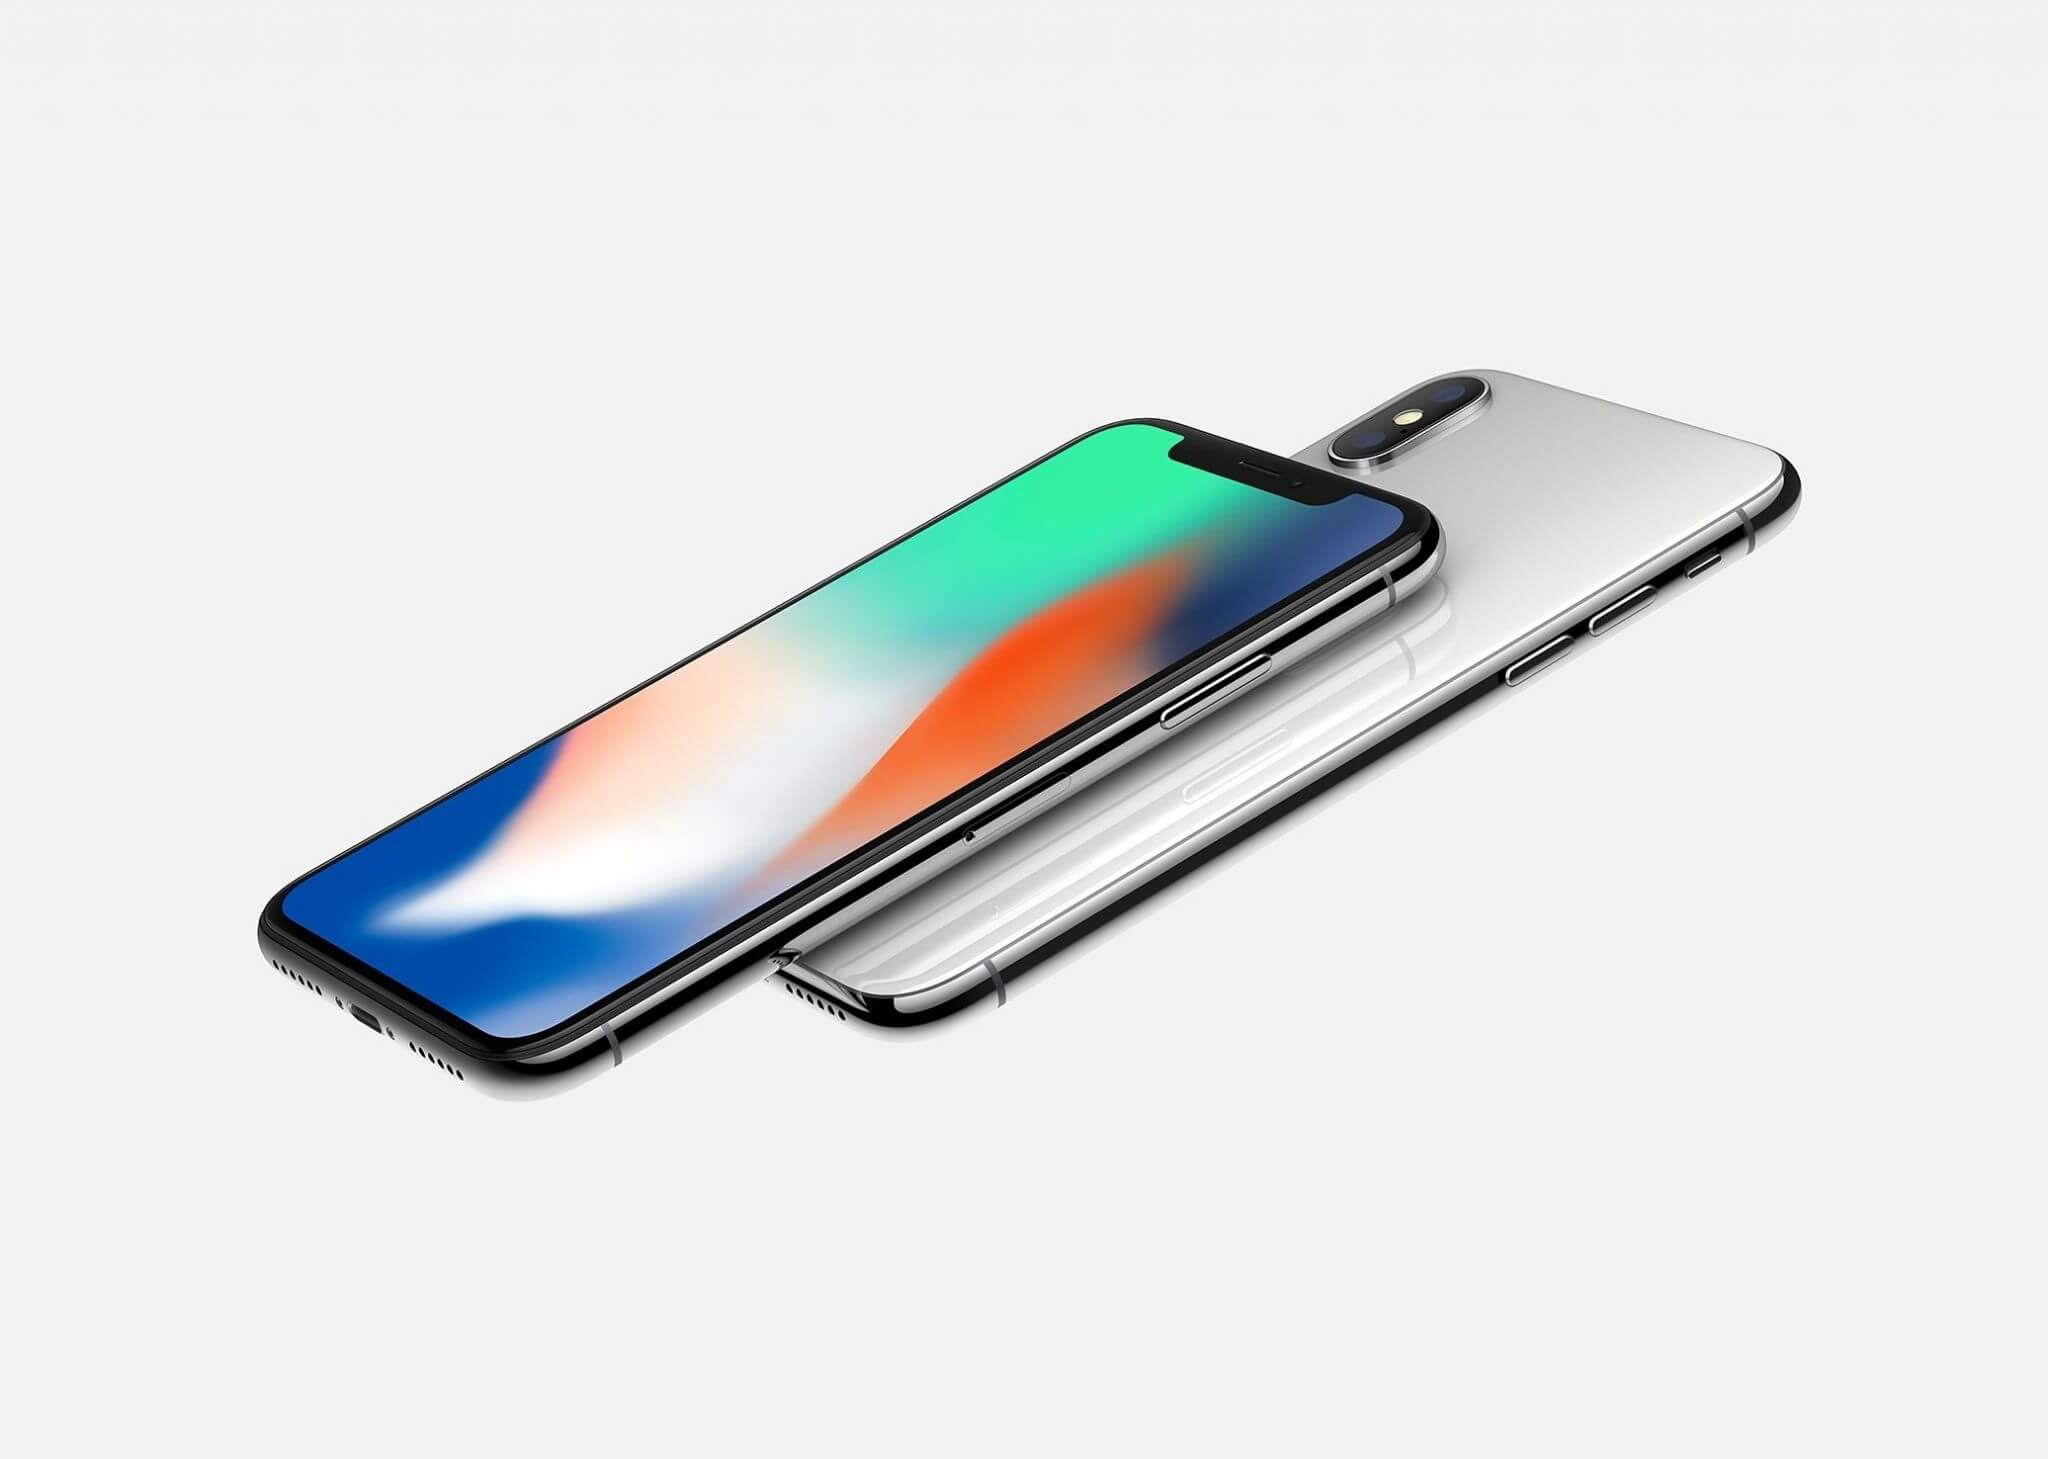 Iphone x gallery1 2017. 0